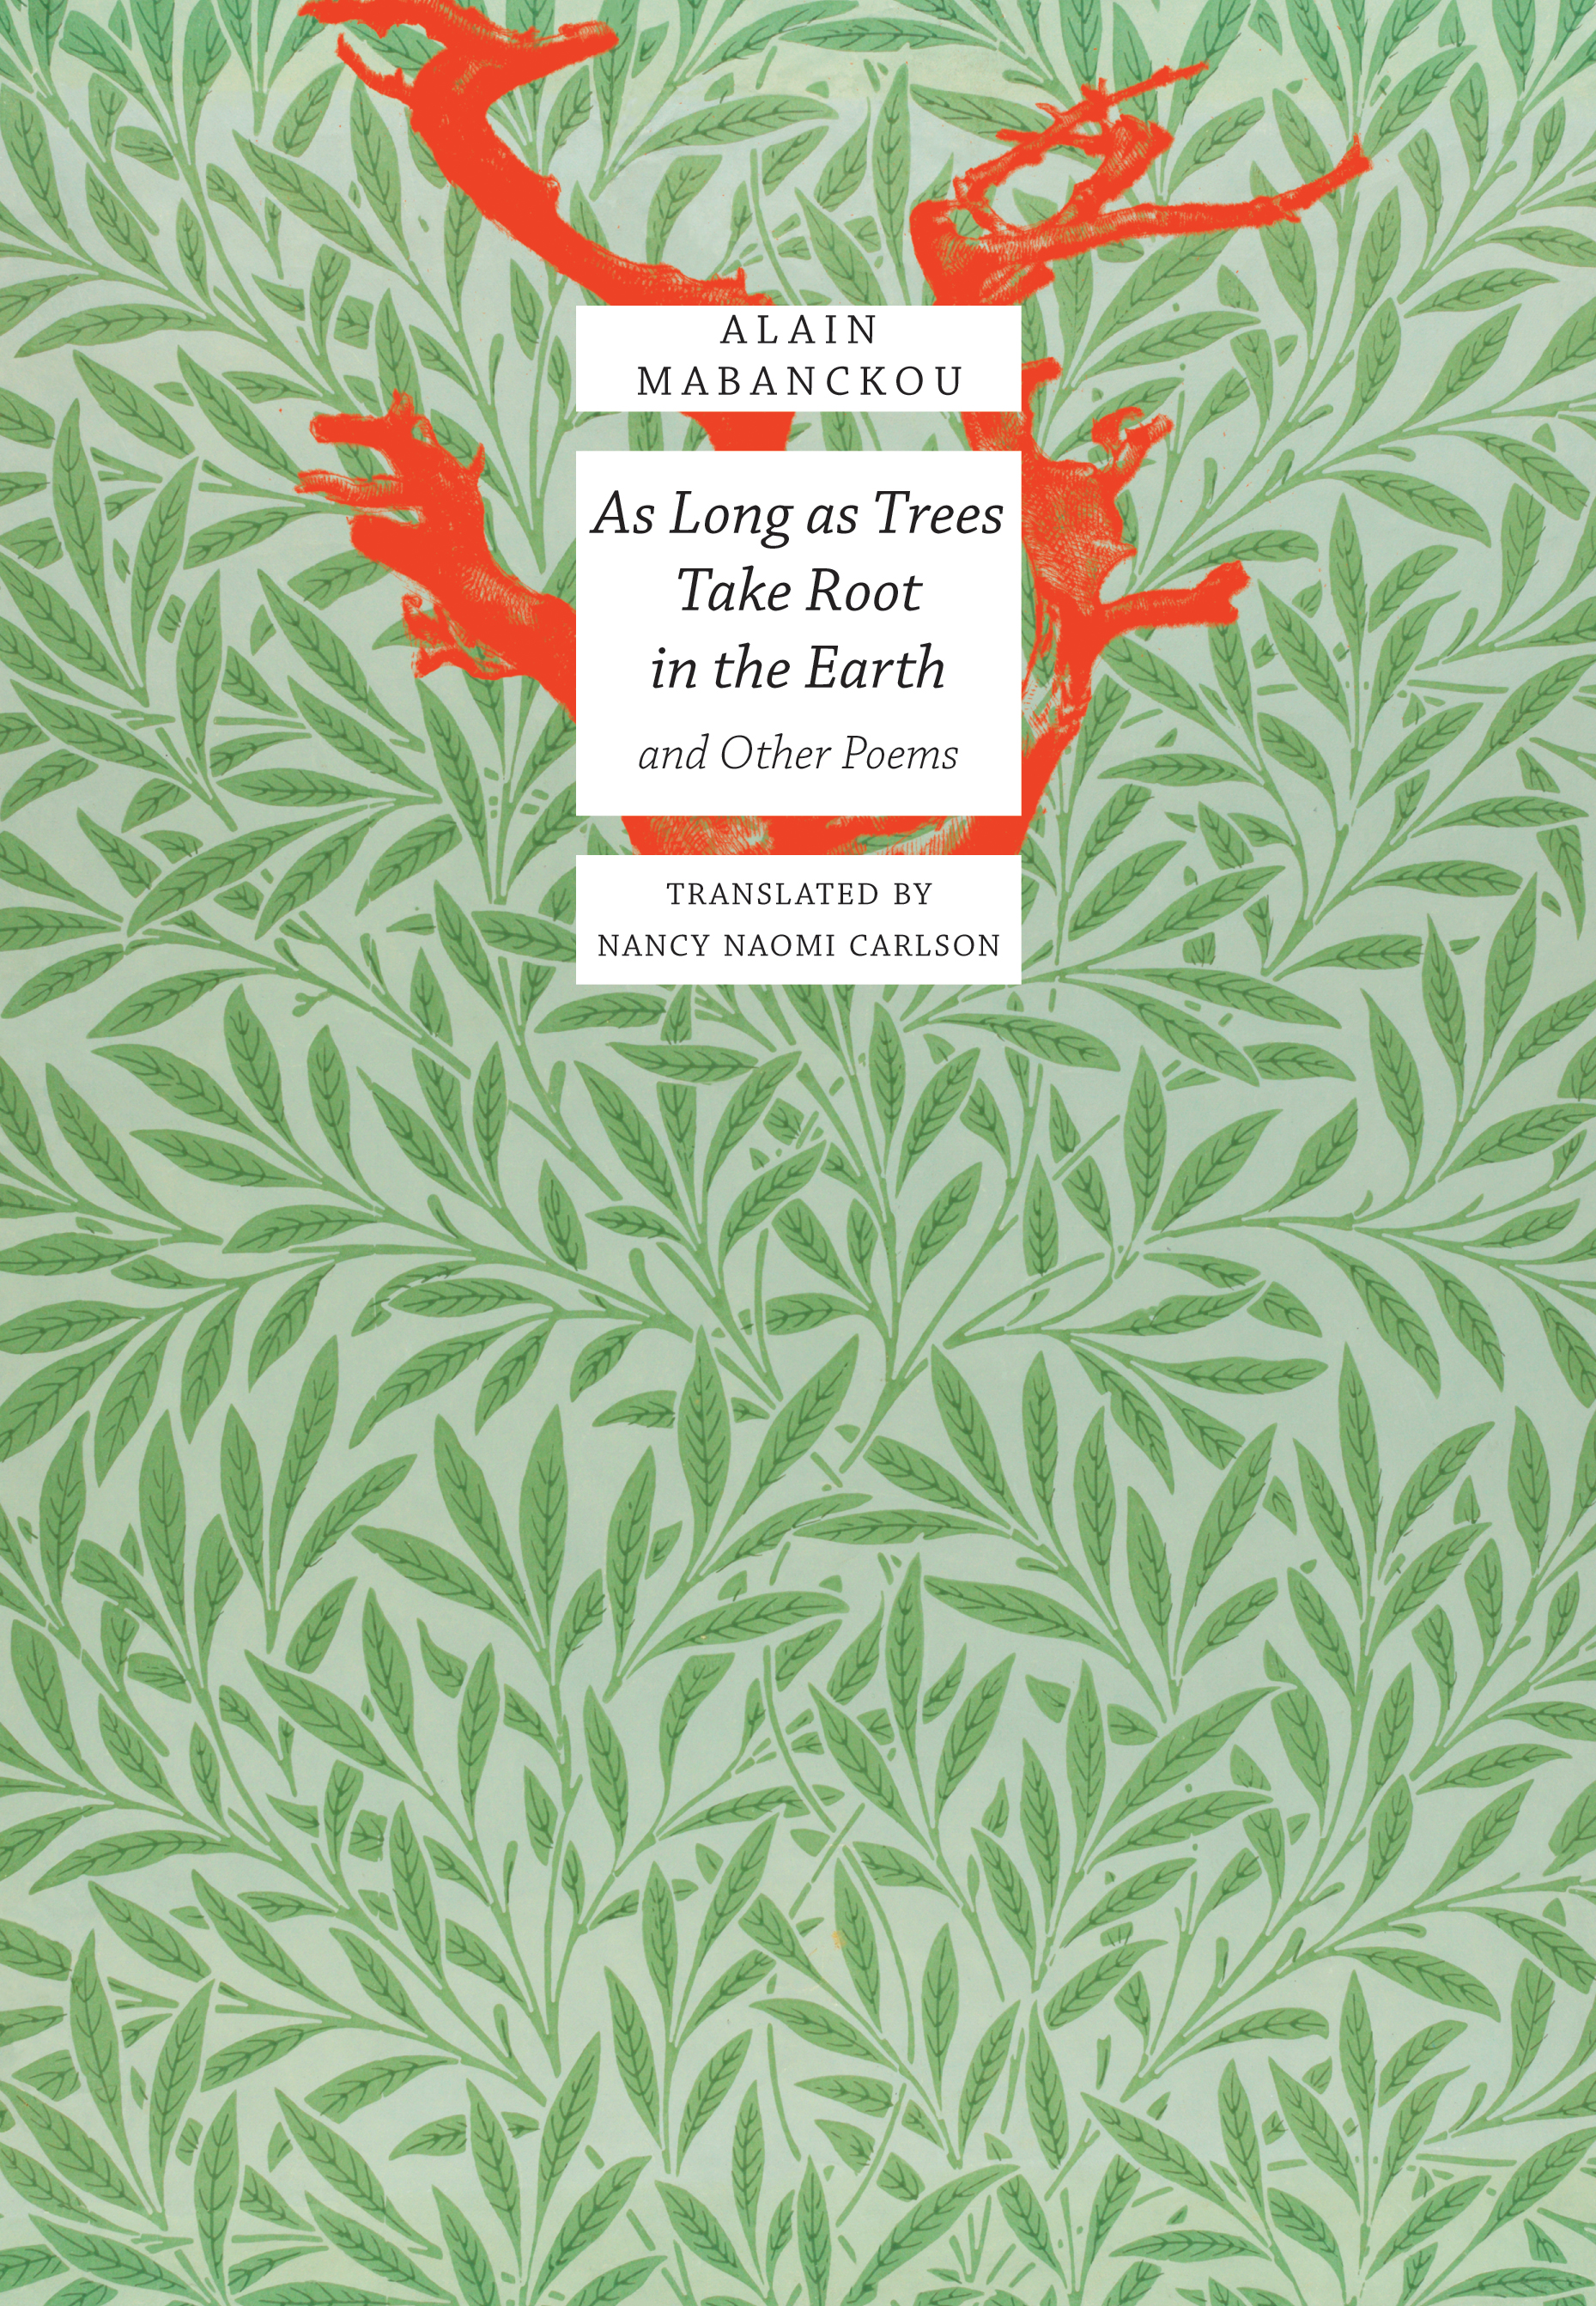 As Long as Trees Take Root in the Earth by Alain Mabanckou | Seagull Books